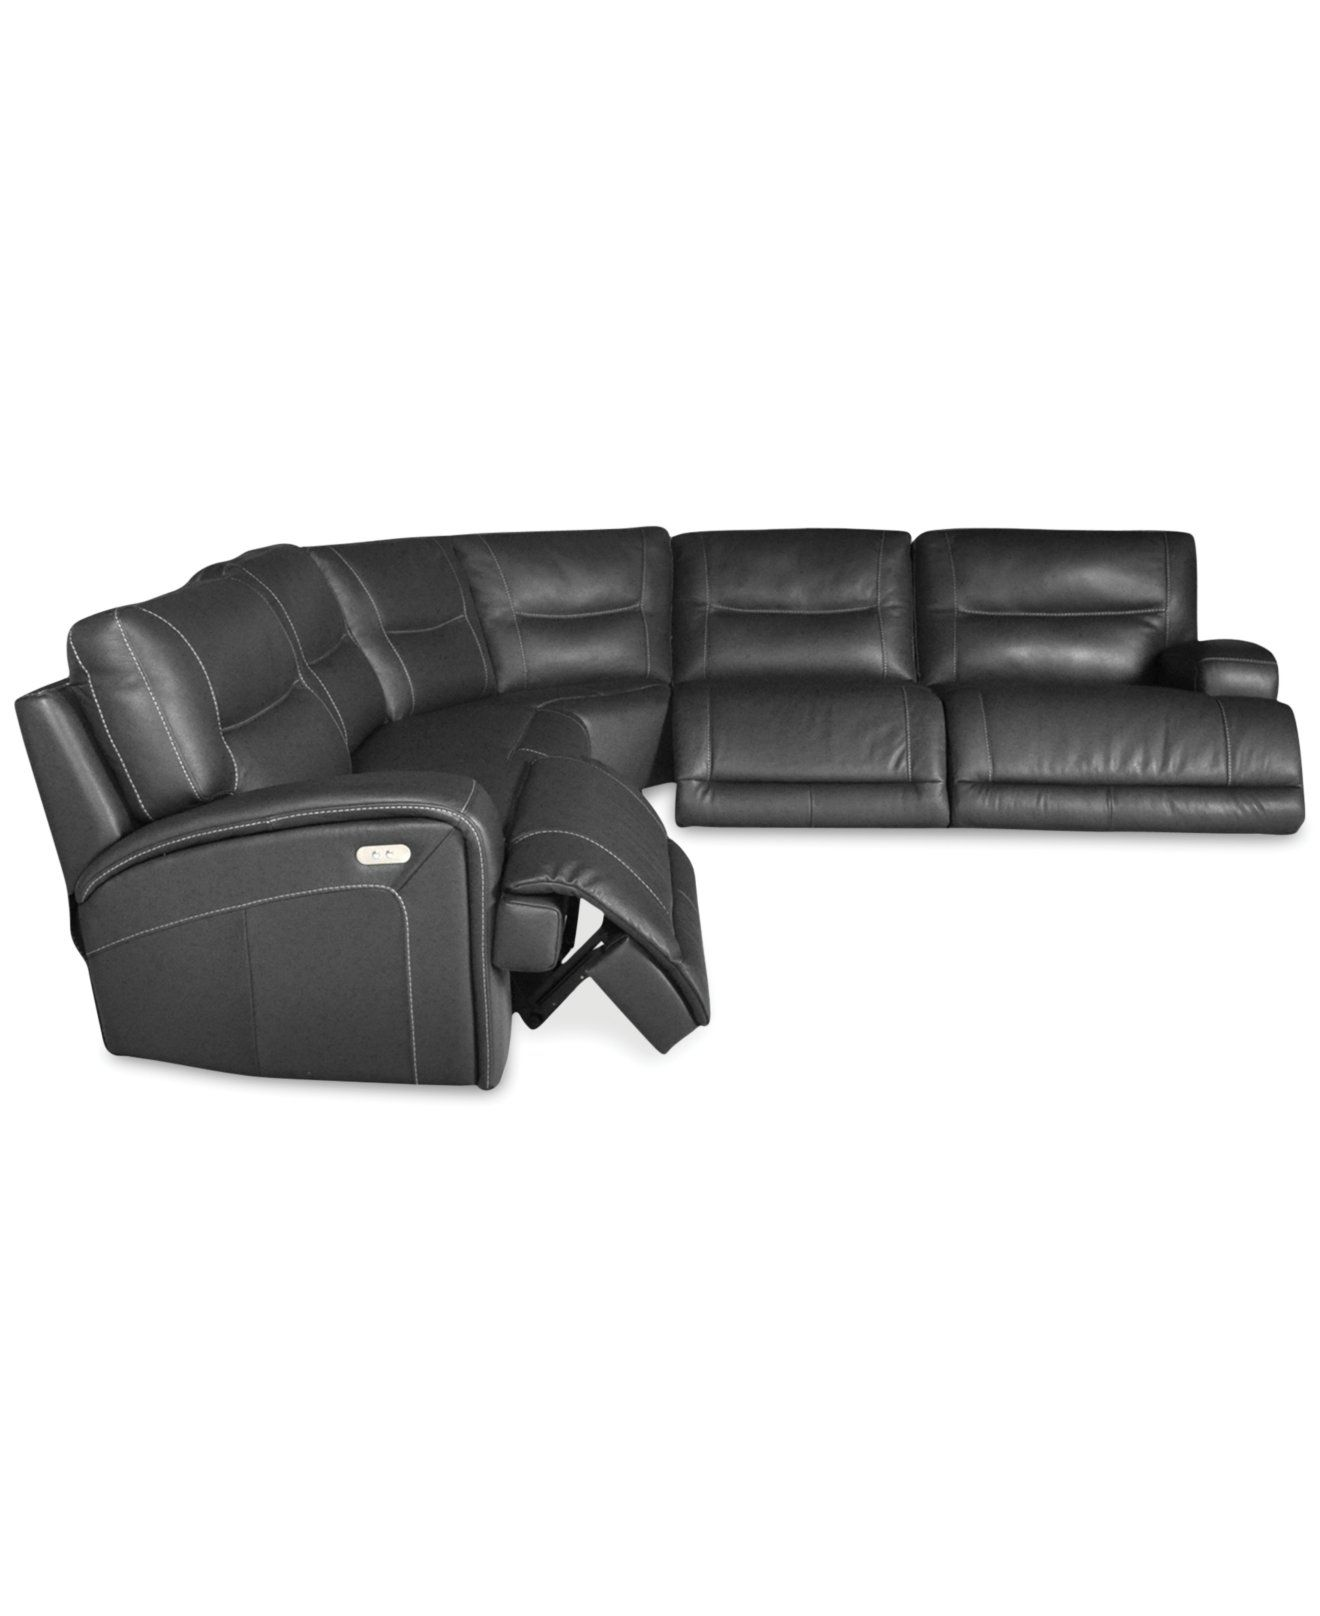 Caruso Leather 5 Piece Power Motion Sectional Sofa Living Room